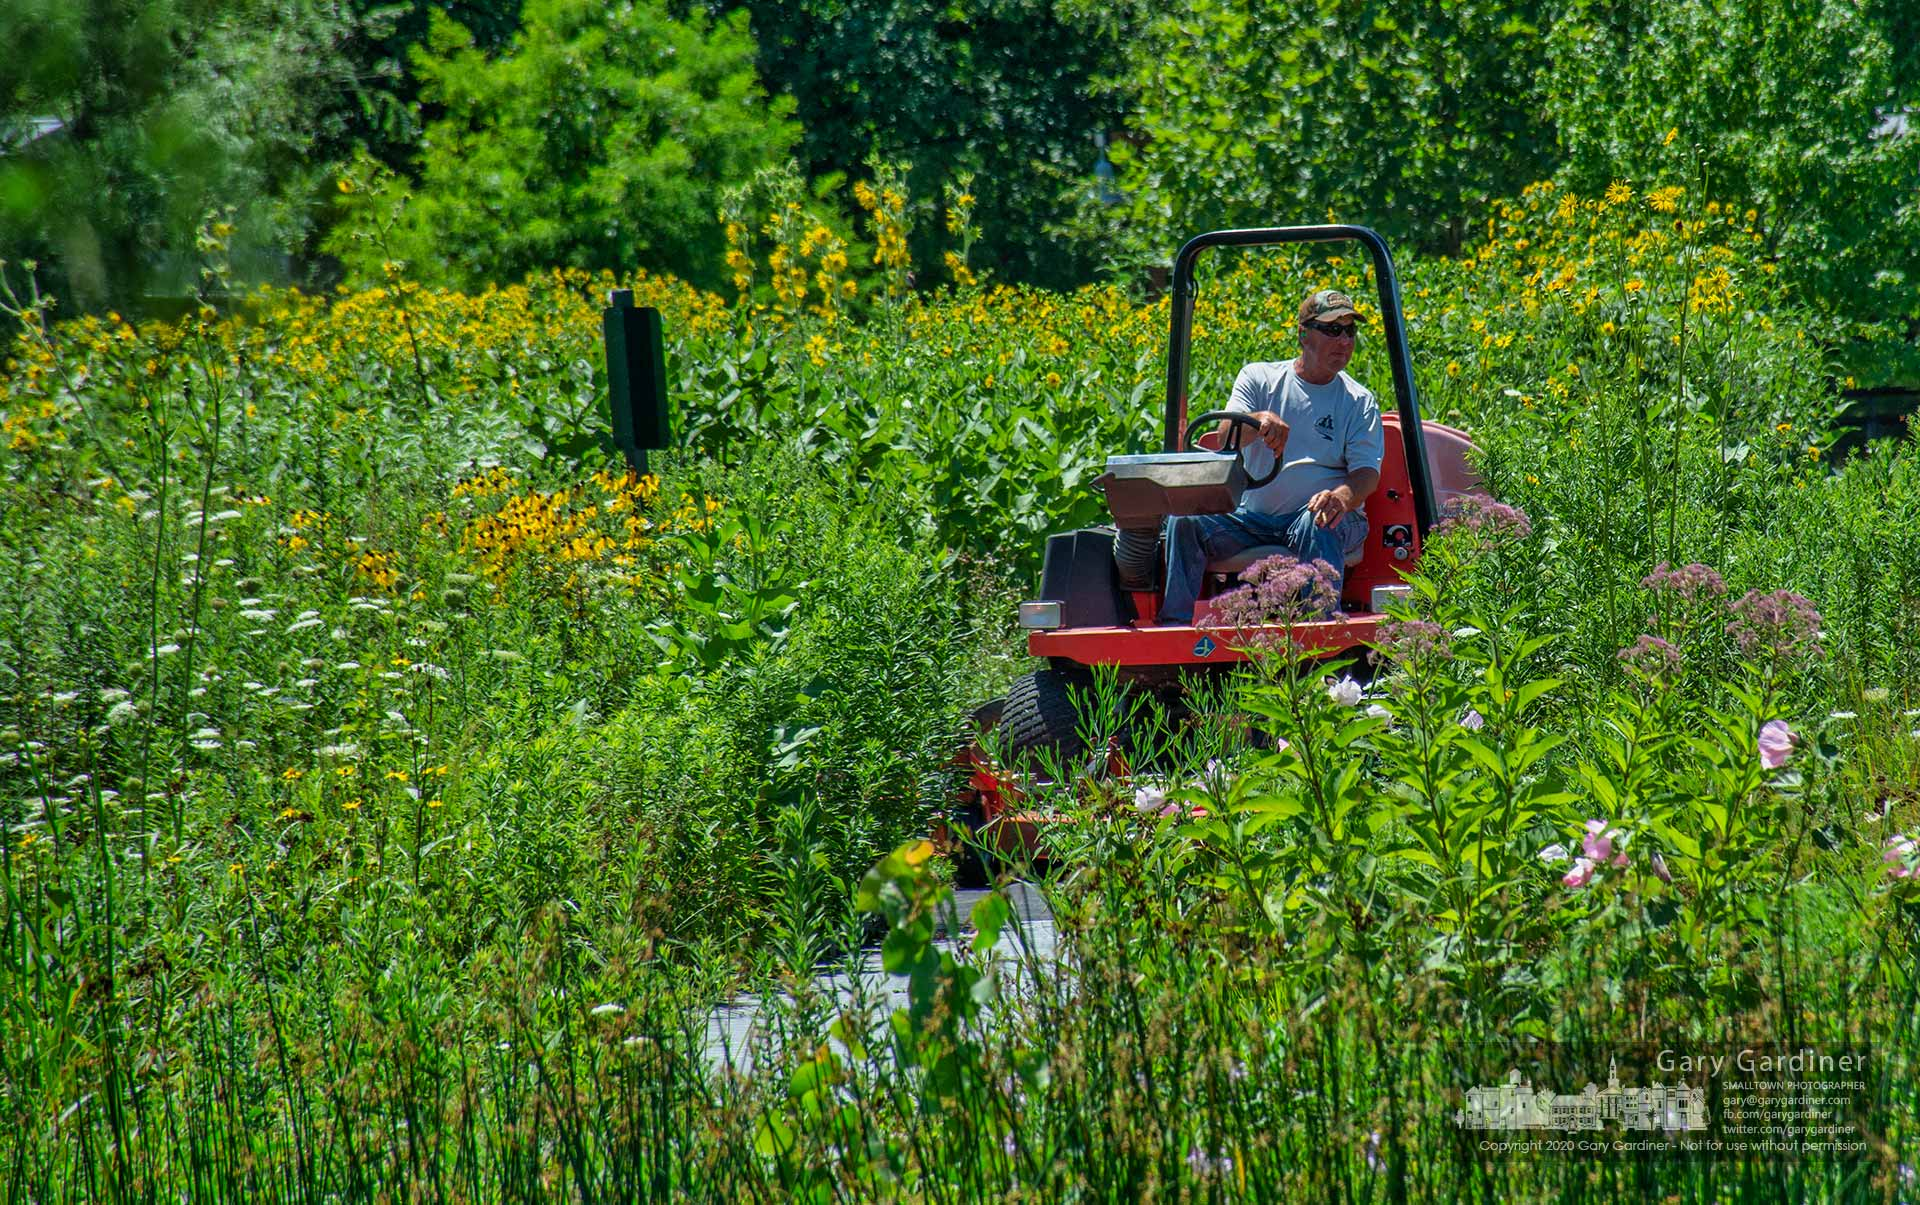 A groundskeeper for Westerville Parks and Recreation mows narrow strips of grass along the edge of the small prairie filled with flowers at the wetlands at Highlands Park. My Final Photo for July 28, 2020.